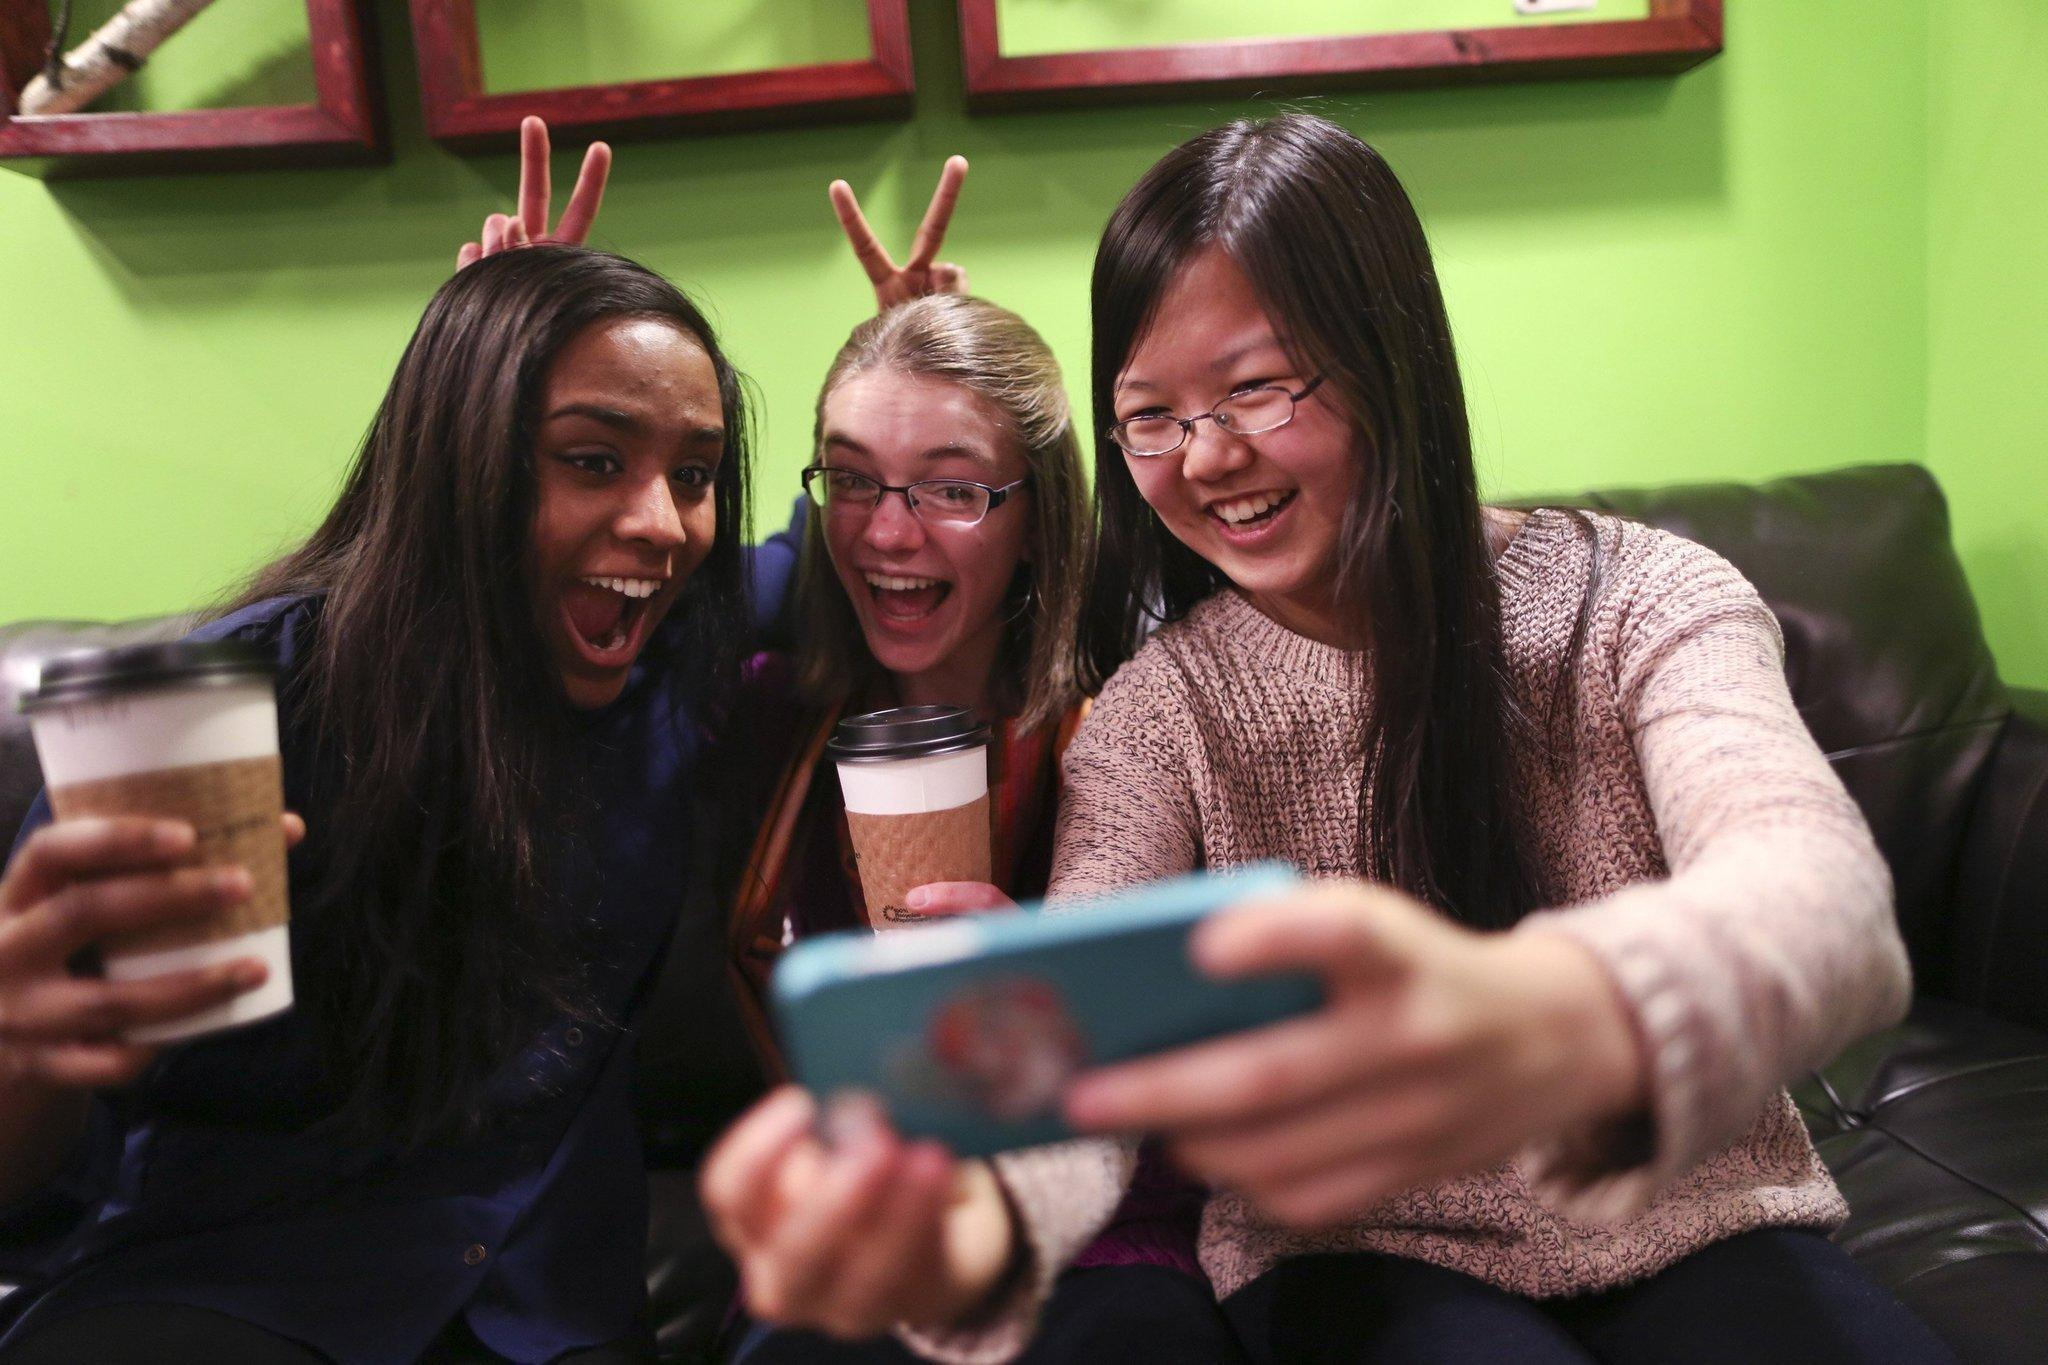 """Friends Amrita Mohanty, 16, from left, Marta Williams, 16, and Michelle Mao, 15, take a Snapchat """"selfie"""" while having coffee at the Steepery Tea Bar in Woodbury, Minn., Dec. 12, 2013."""